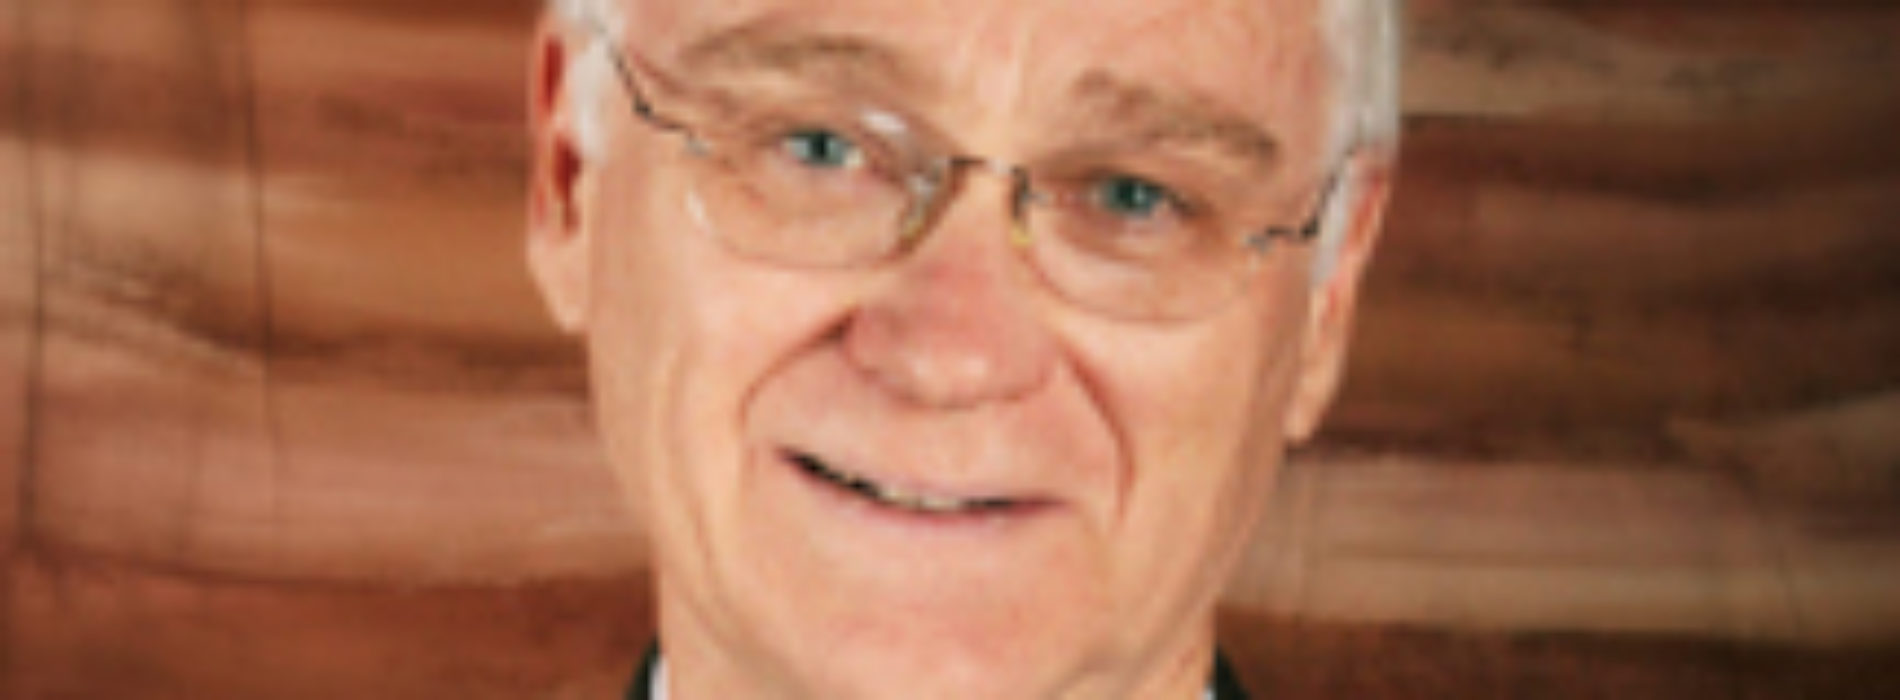 Anderson to Speak on Heroes for Assembly